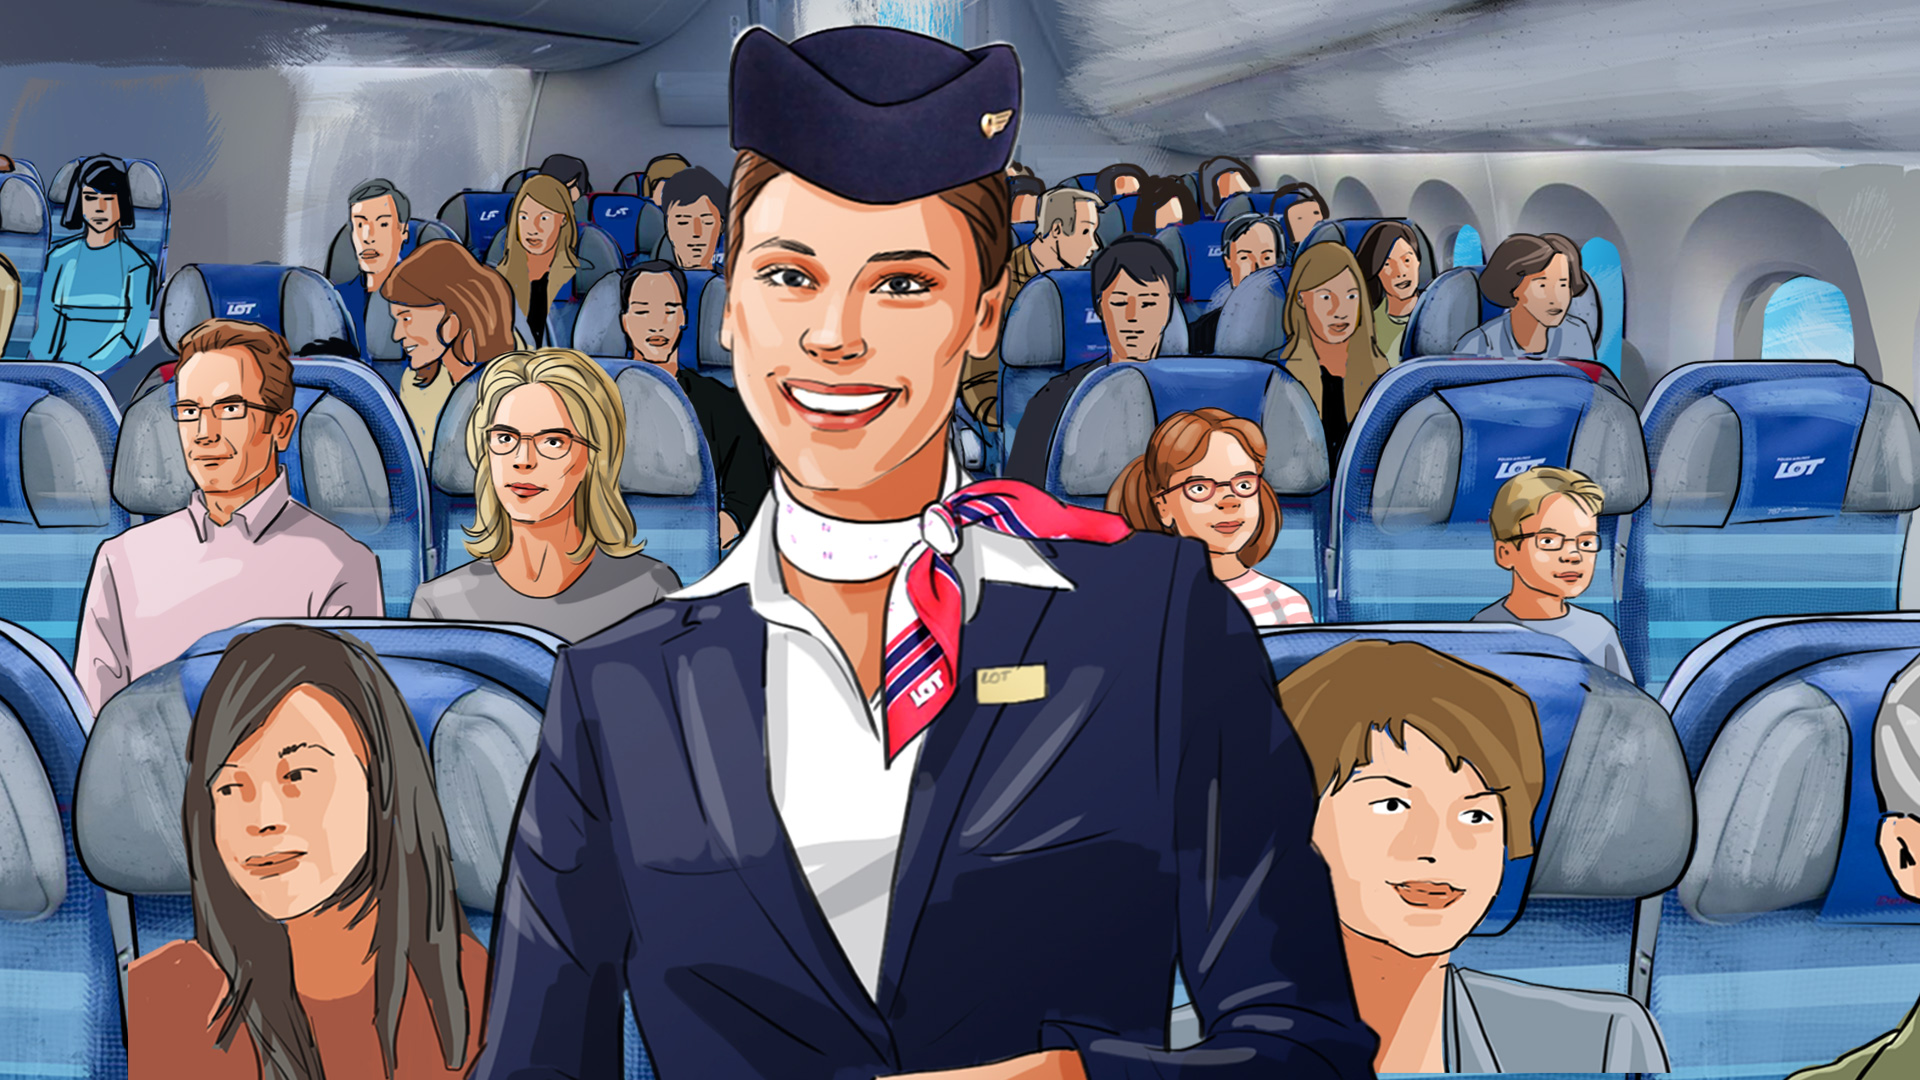 stewardess smile plane board illustration